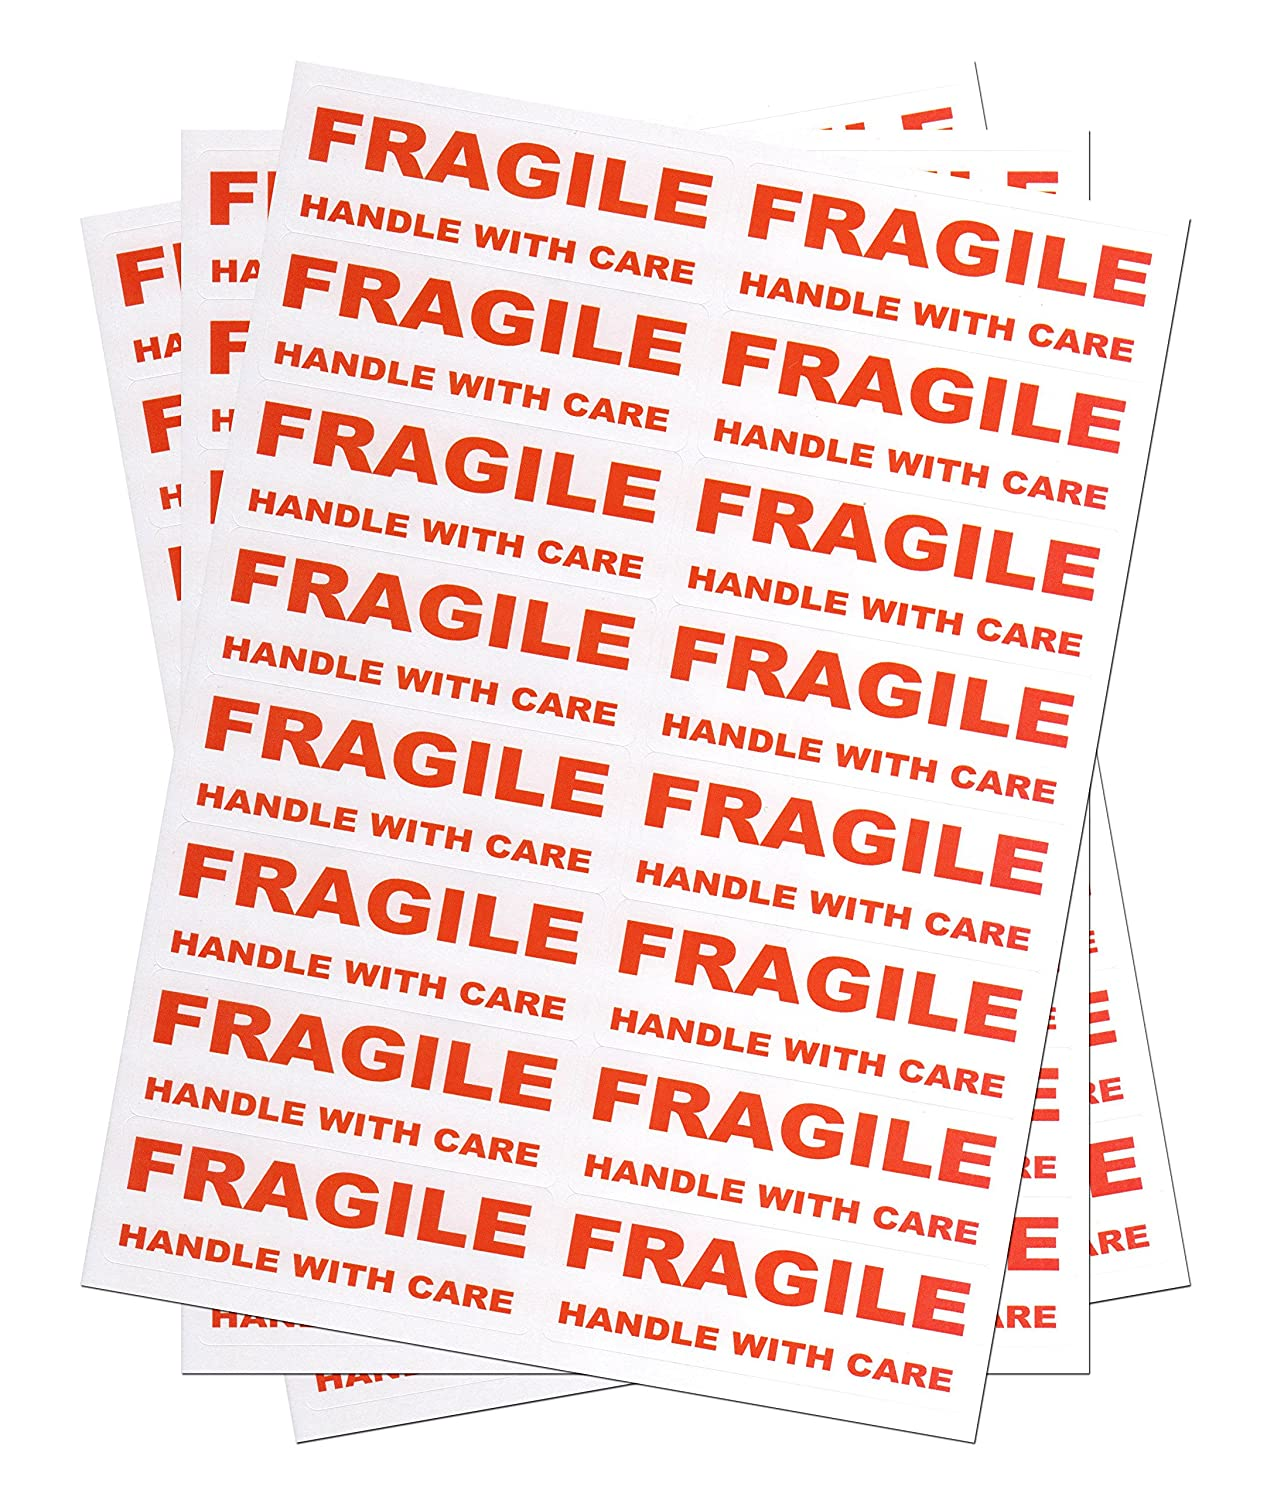 800 FRAGILE - Handle with care Labels Large Stickers Mediasave